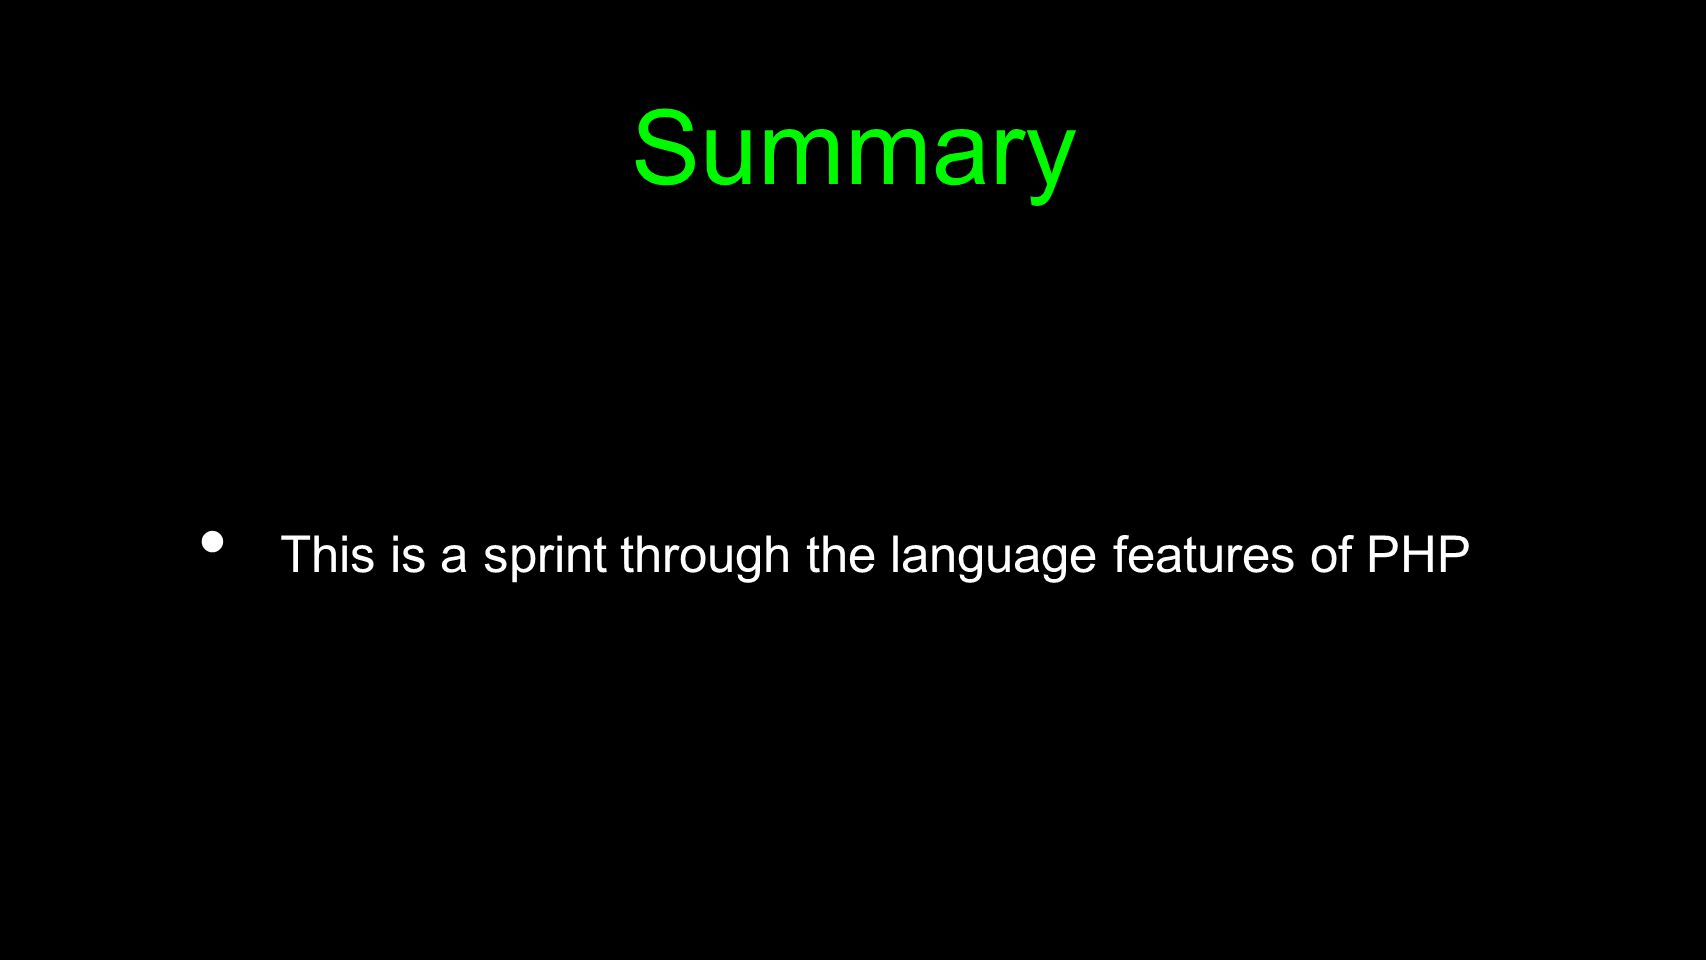 Summary This is a sprint through the language features of PHP